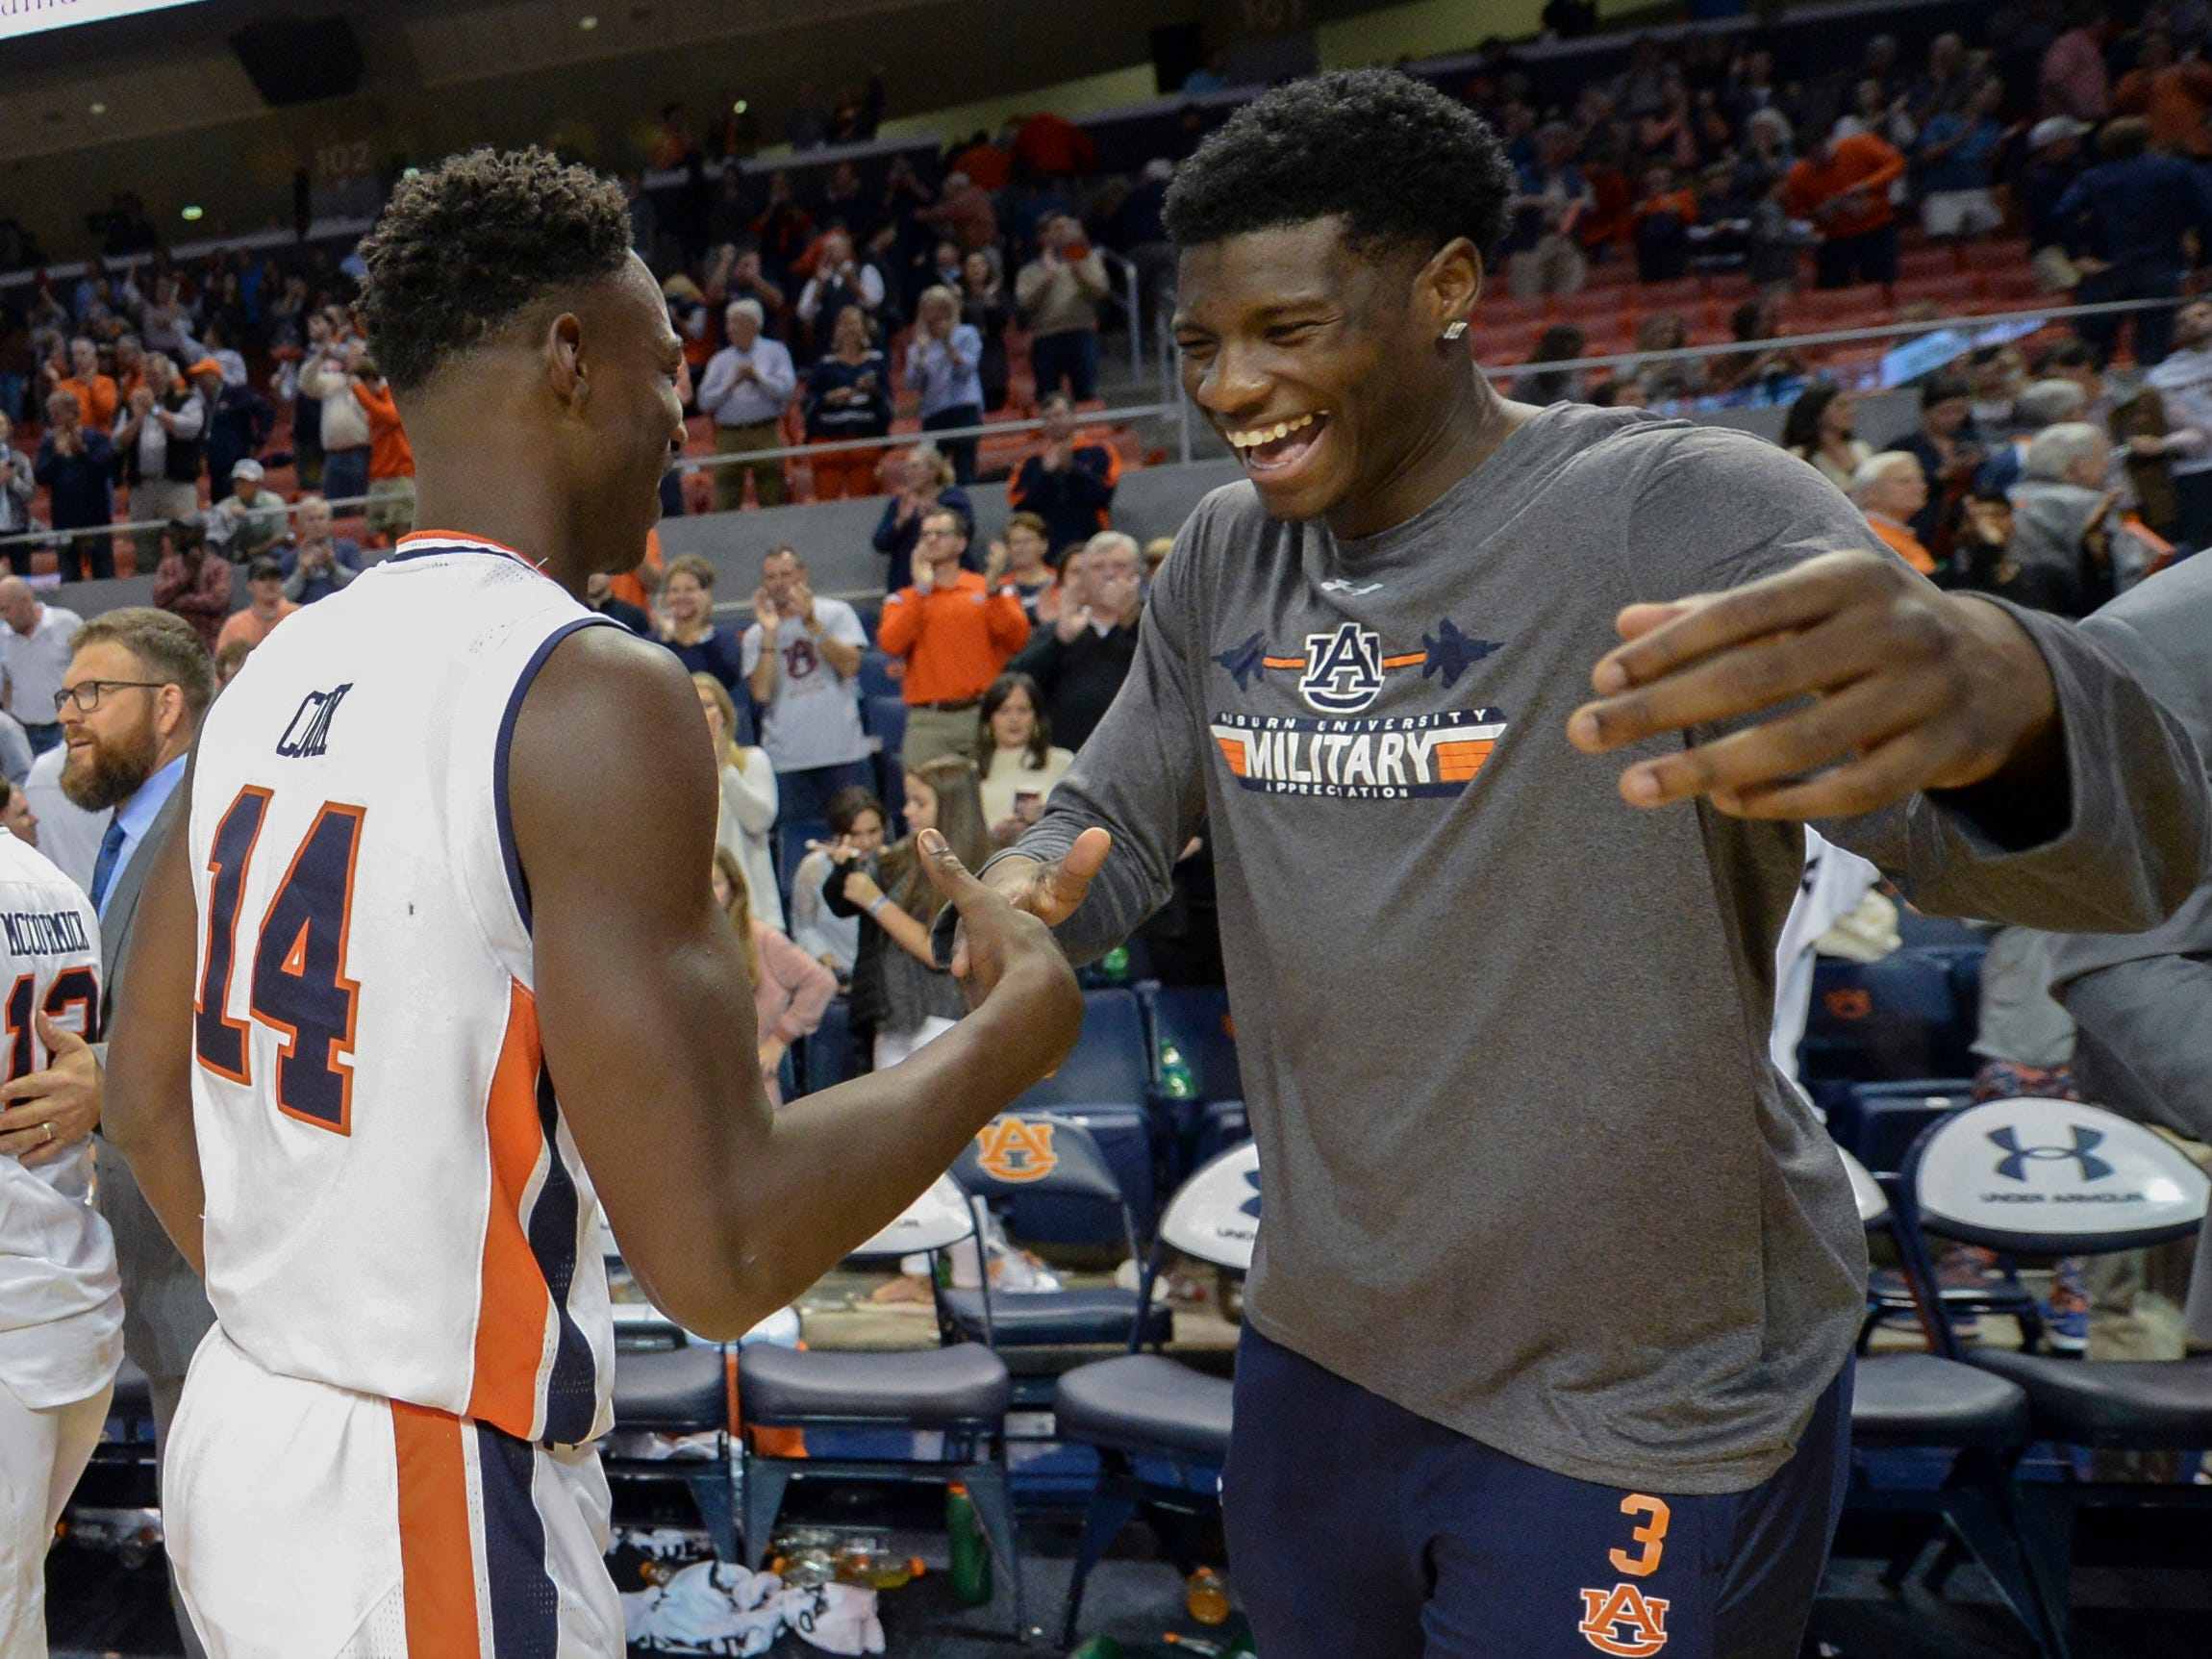 Auburn forward Danjel Purifoy (right) celebrates the 88-66 win over Washington at Auburn Arena.